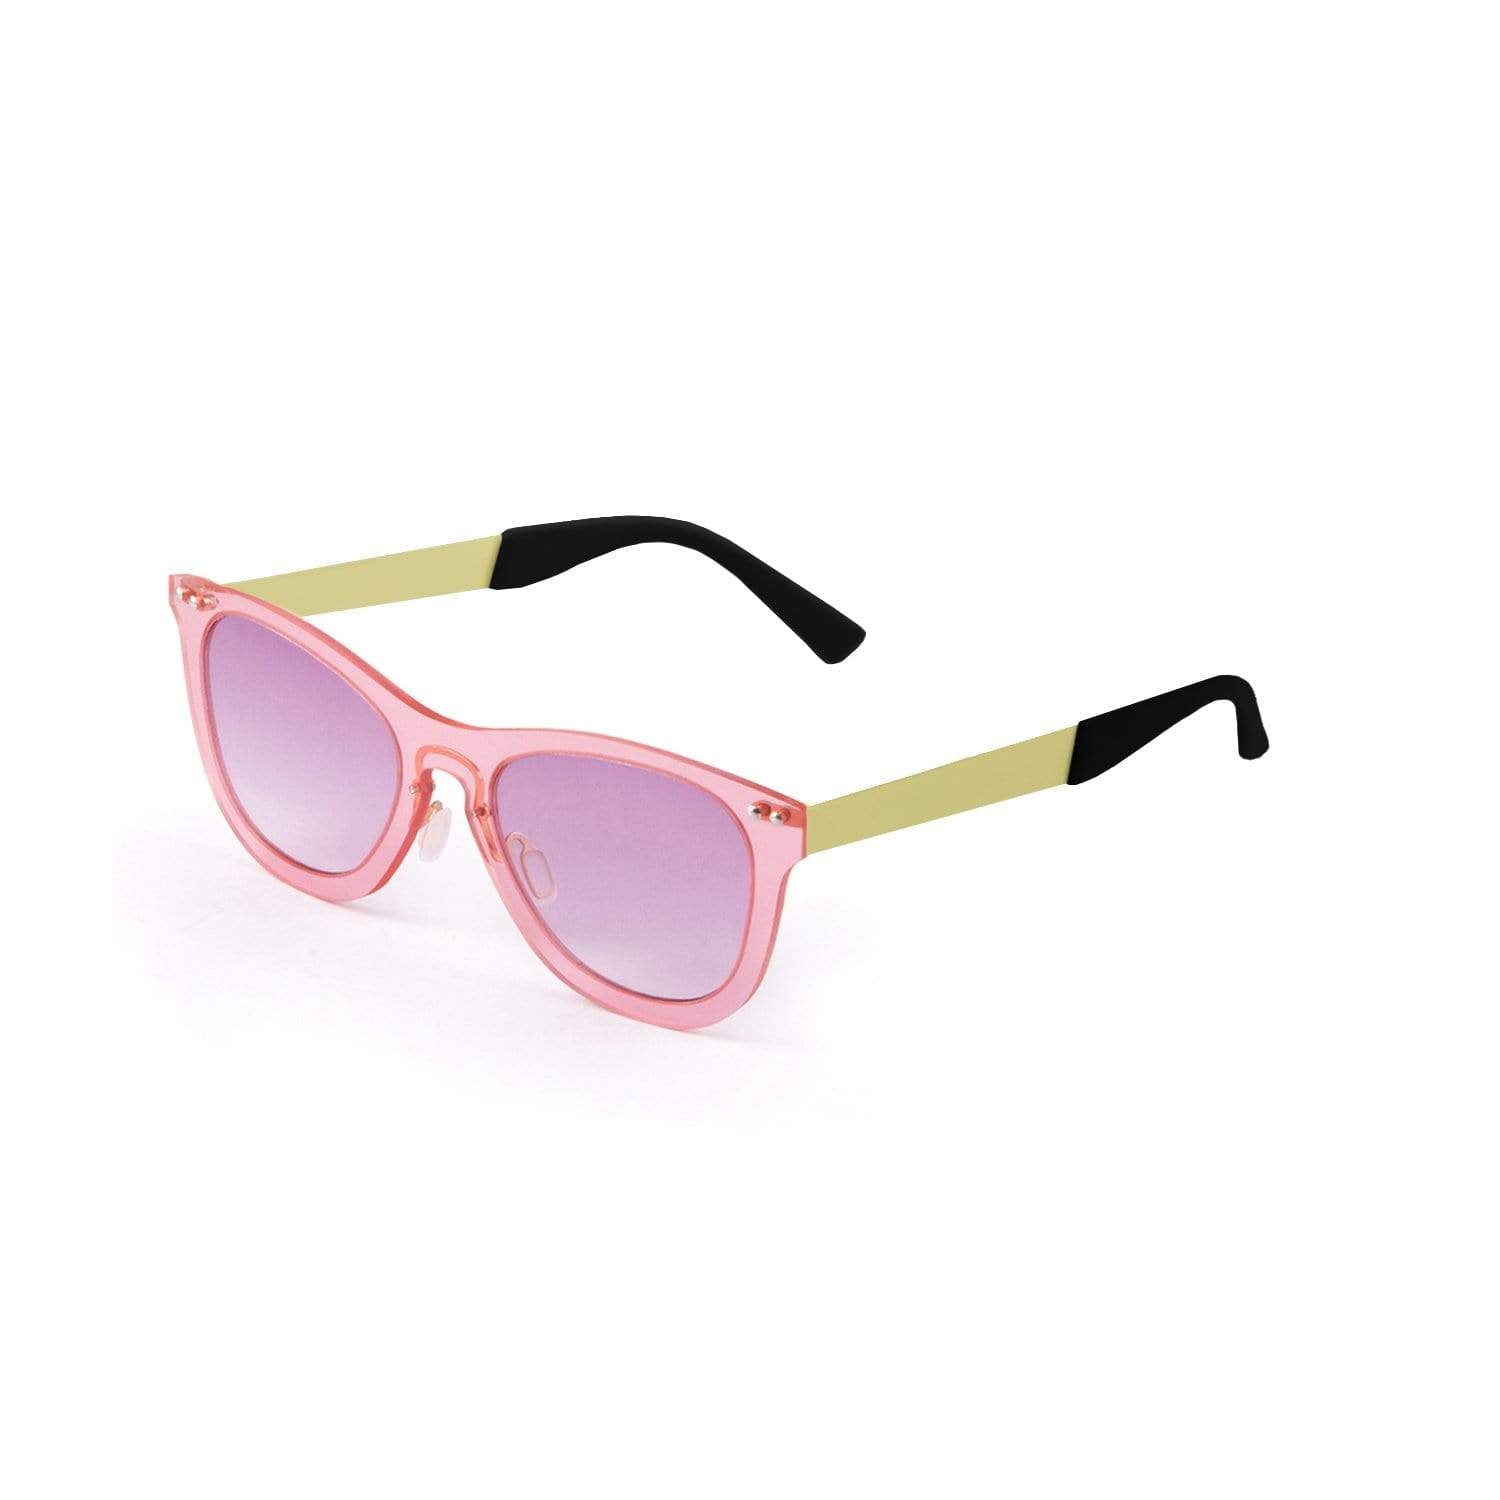 Ocean Sunglasses Accessories Sunglasses pink-2 / NOSIZE Ocean Sunglasses - FLORENCIA